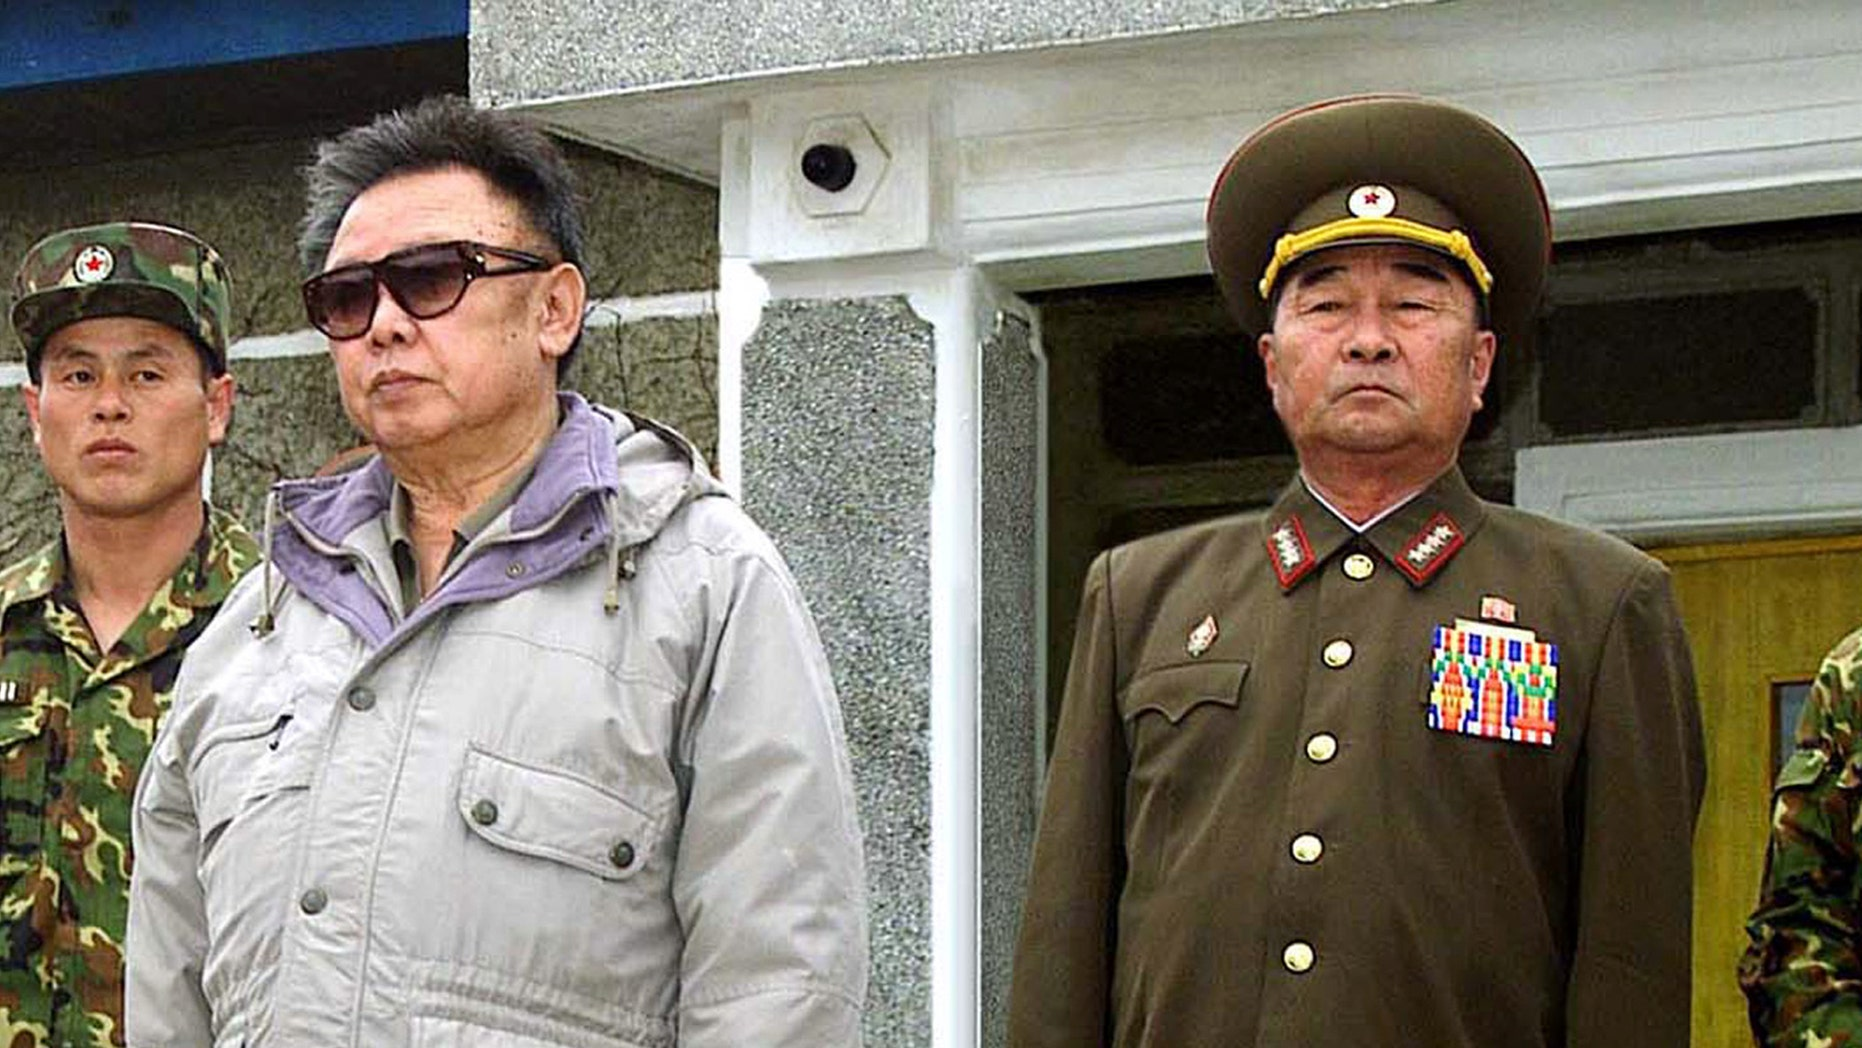 FILE - In this April 23, 2007 file photo released by Korean Central News Agency via Korea News Service in Tokyo, Gen. Kim Kyok Sik, right, stands with then-North Korean leader Kim Jong Il during the leader's inspection of Korean People's Army Unit 1637 at an undisclosed location in North Korea. North Korea replaced hard-line defense chief Kim Kyok Sik with little-known army general Jang Jong Nam. Mention of Jang's new role was buried Monday, May 13, 2013 in a state media dispatch listing those who attended an art performance with leader Kim Jong Un. (AP Photo/Korean Central News Agency via Korea News Service, File)